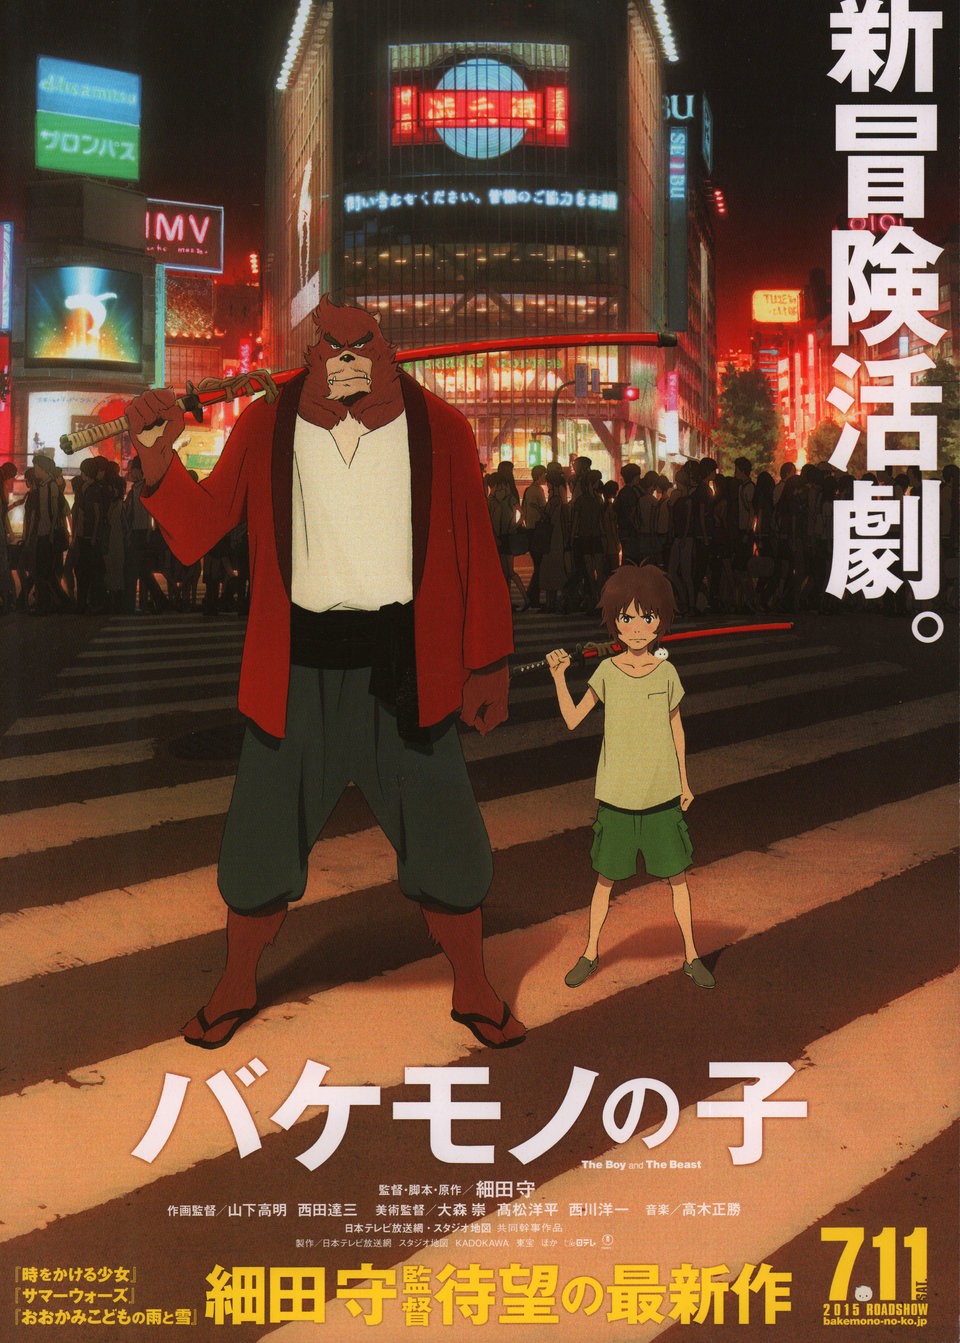 The Boy and the Beast 2015 Japanese B5 Chirashi Flyer